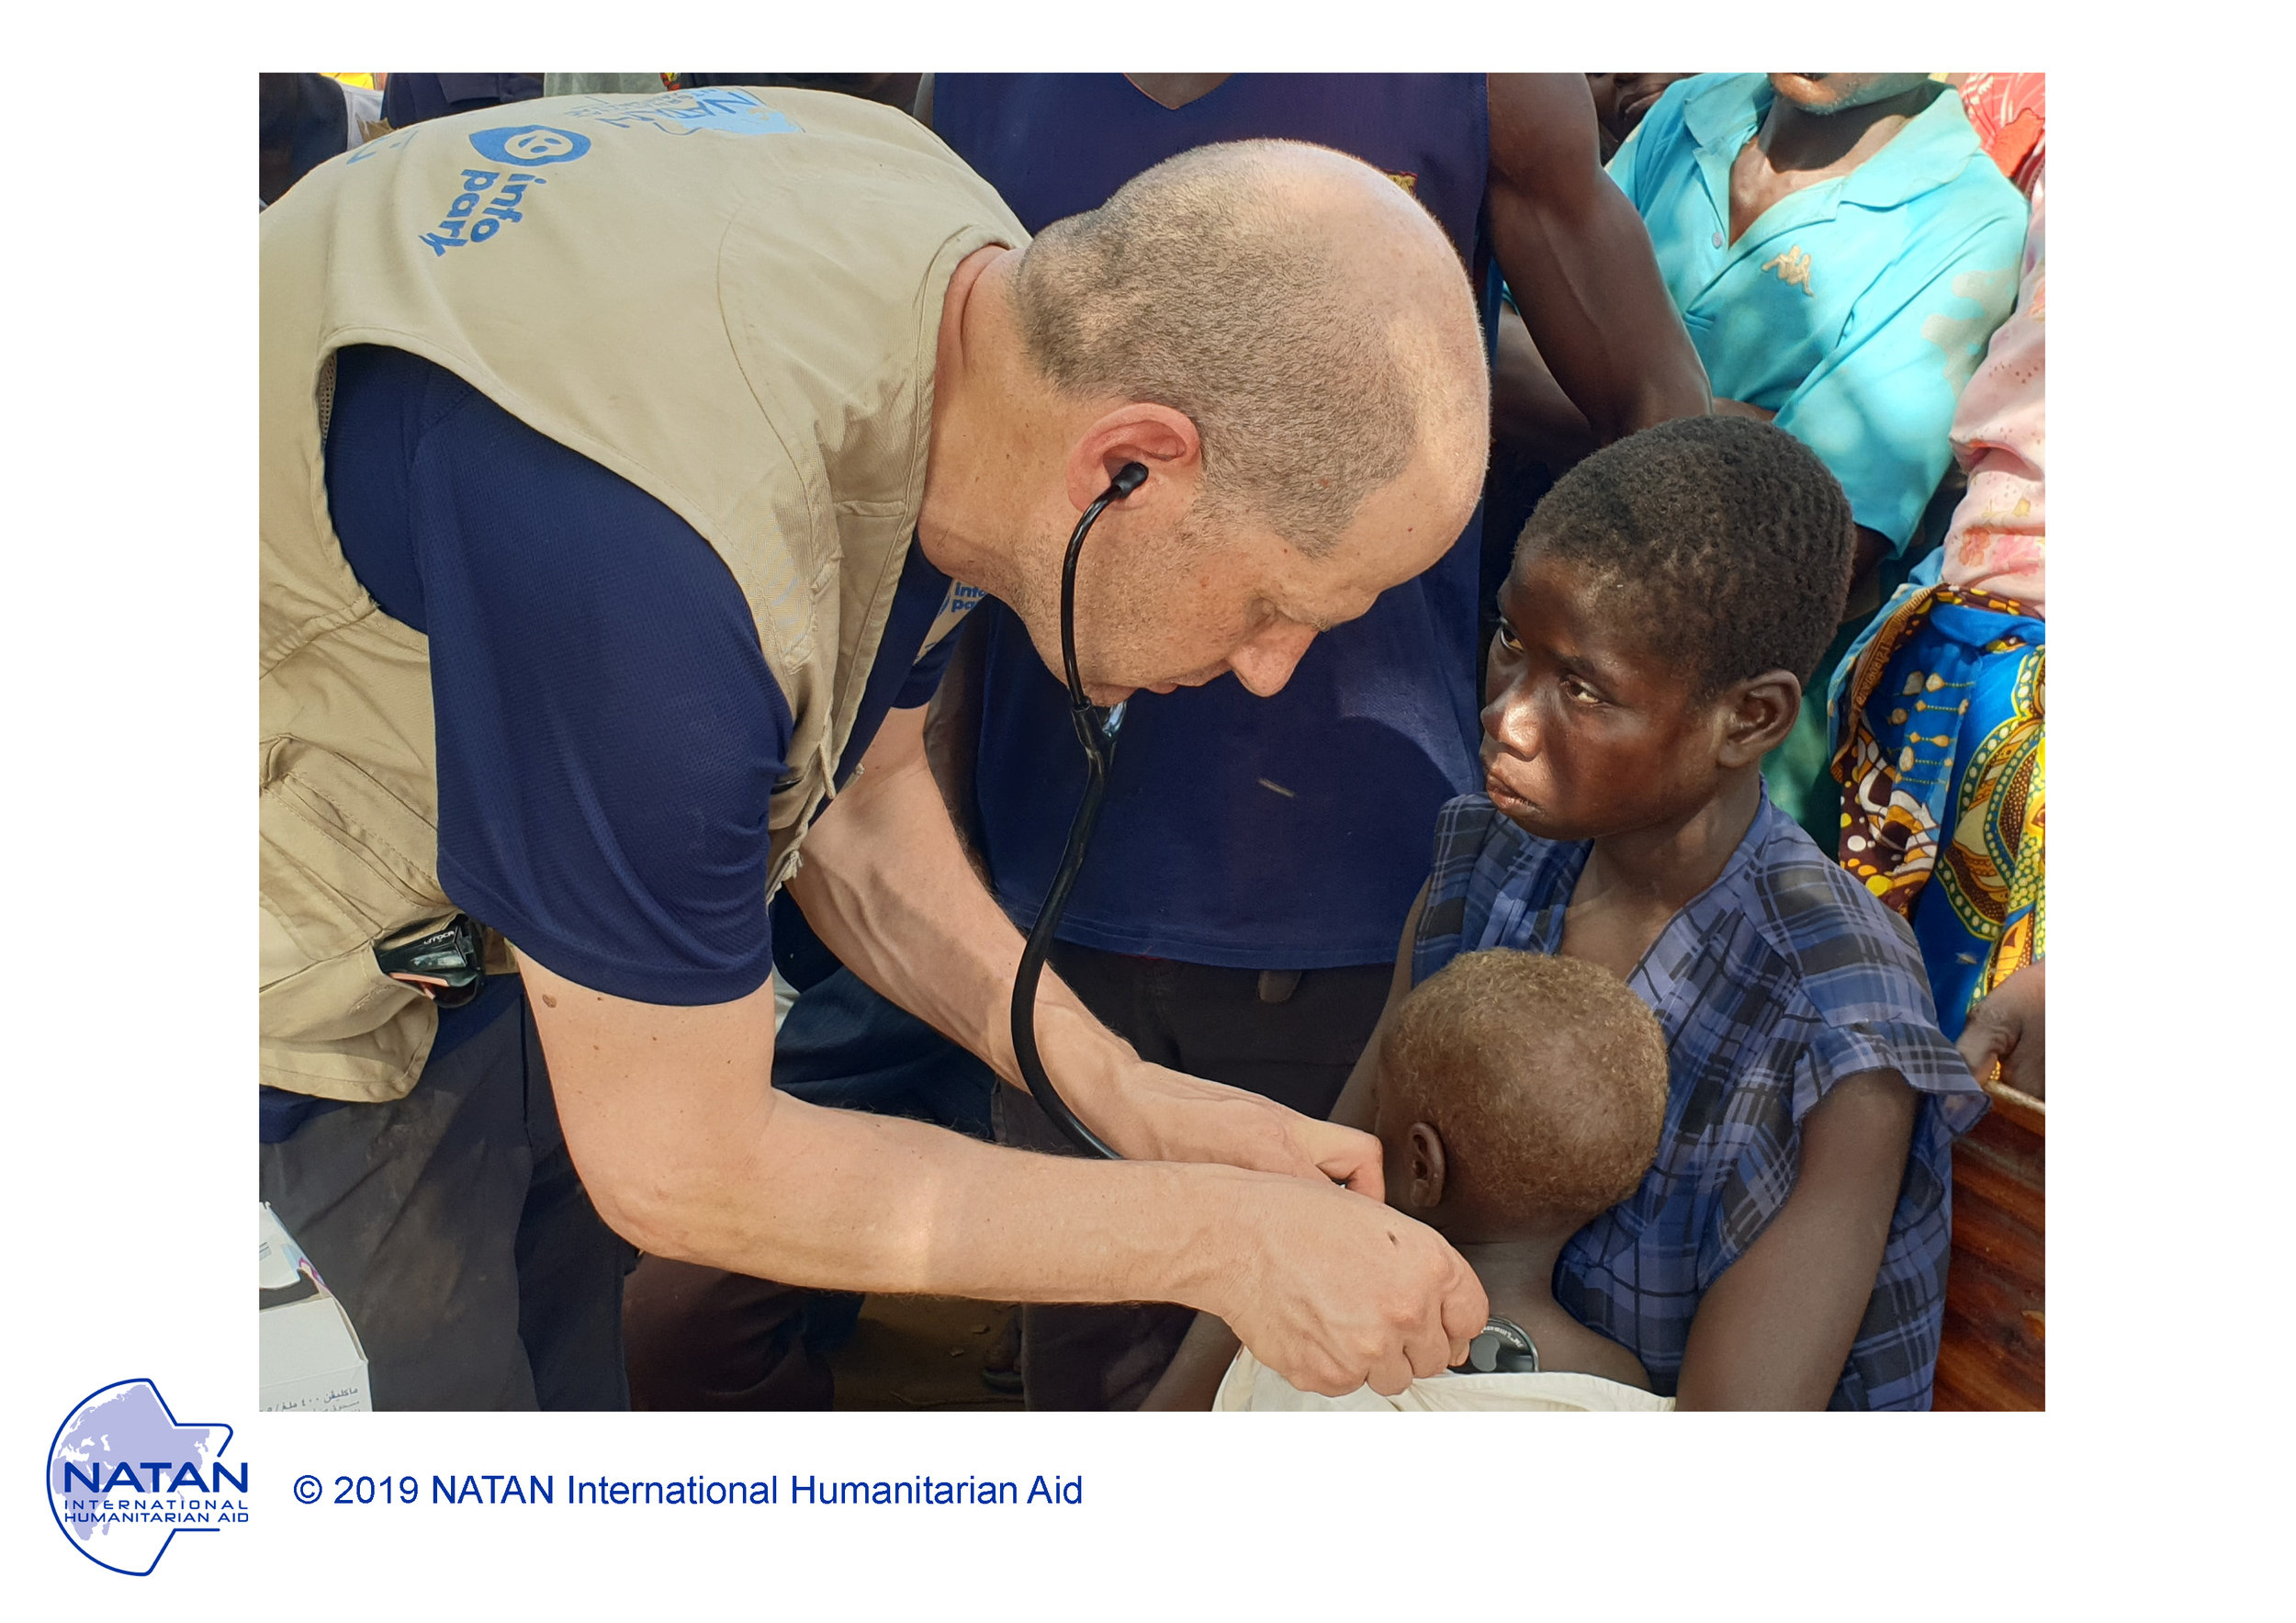 mozambique 2019 - NATAN medic PROVIDing first aid IN OUTDOOR FIELD CLINICS IN BEIRA REGION OF MOZAMBIQUE FOLLOWING CYCLONE IDAI